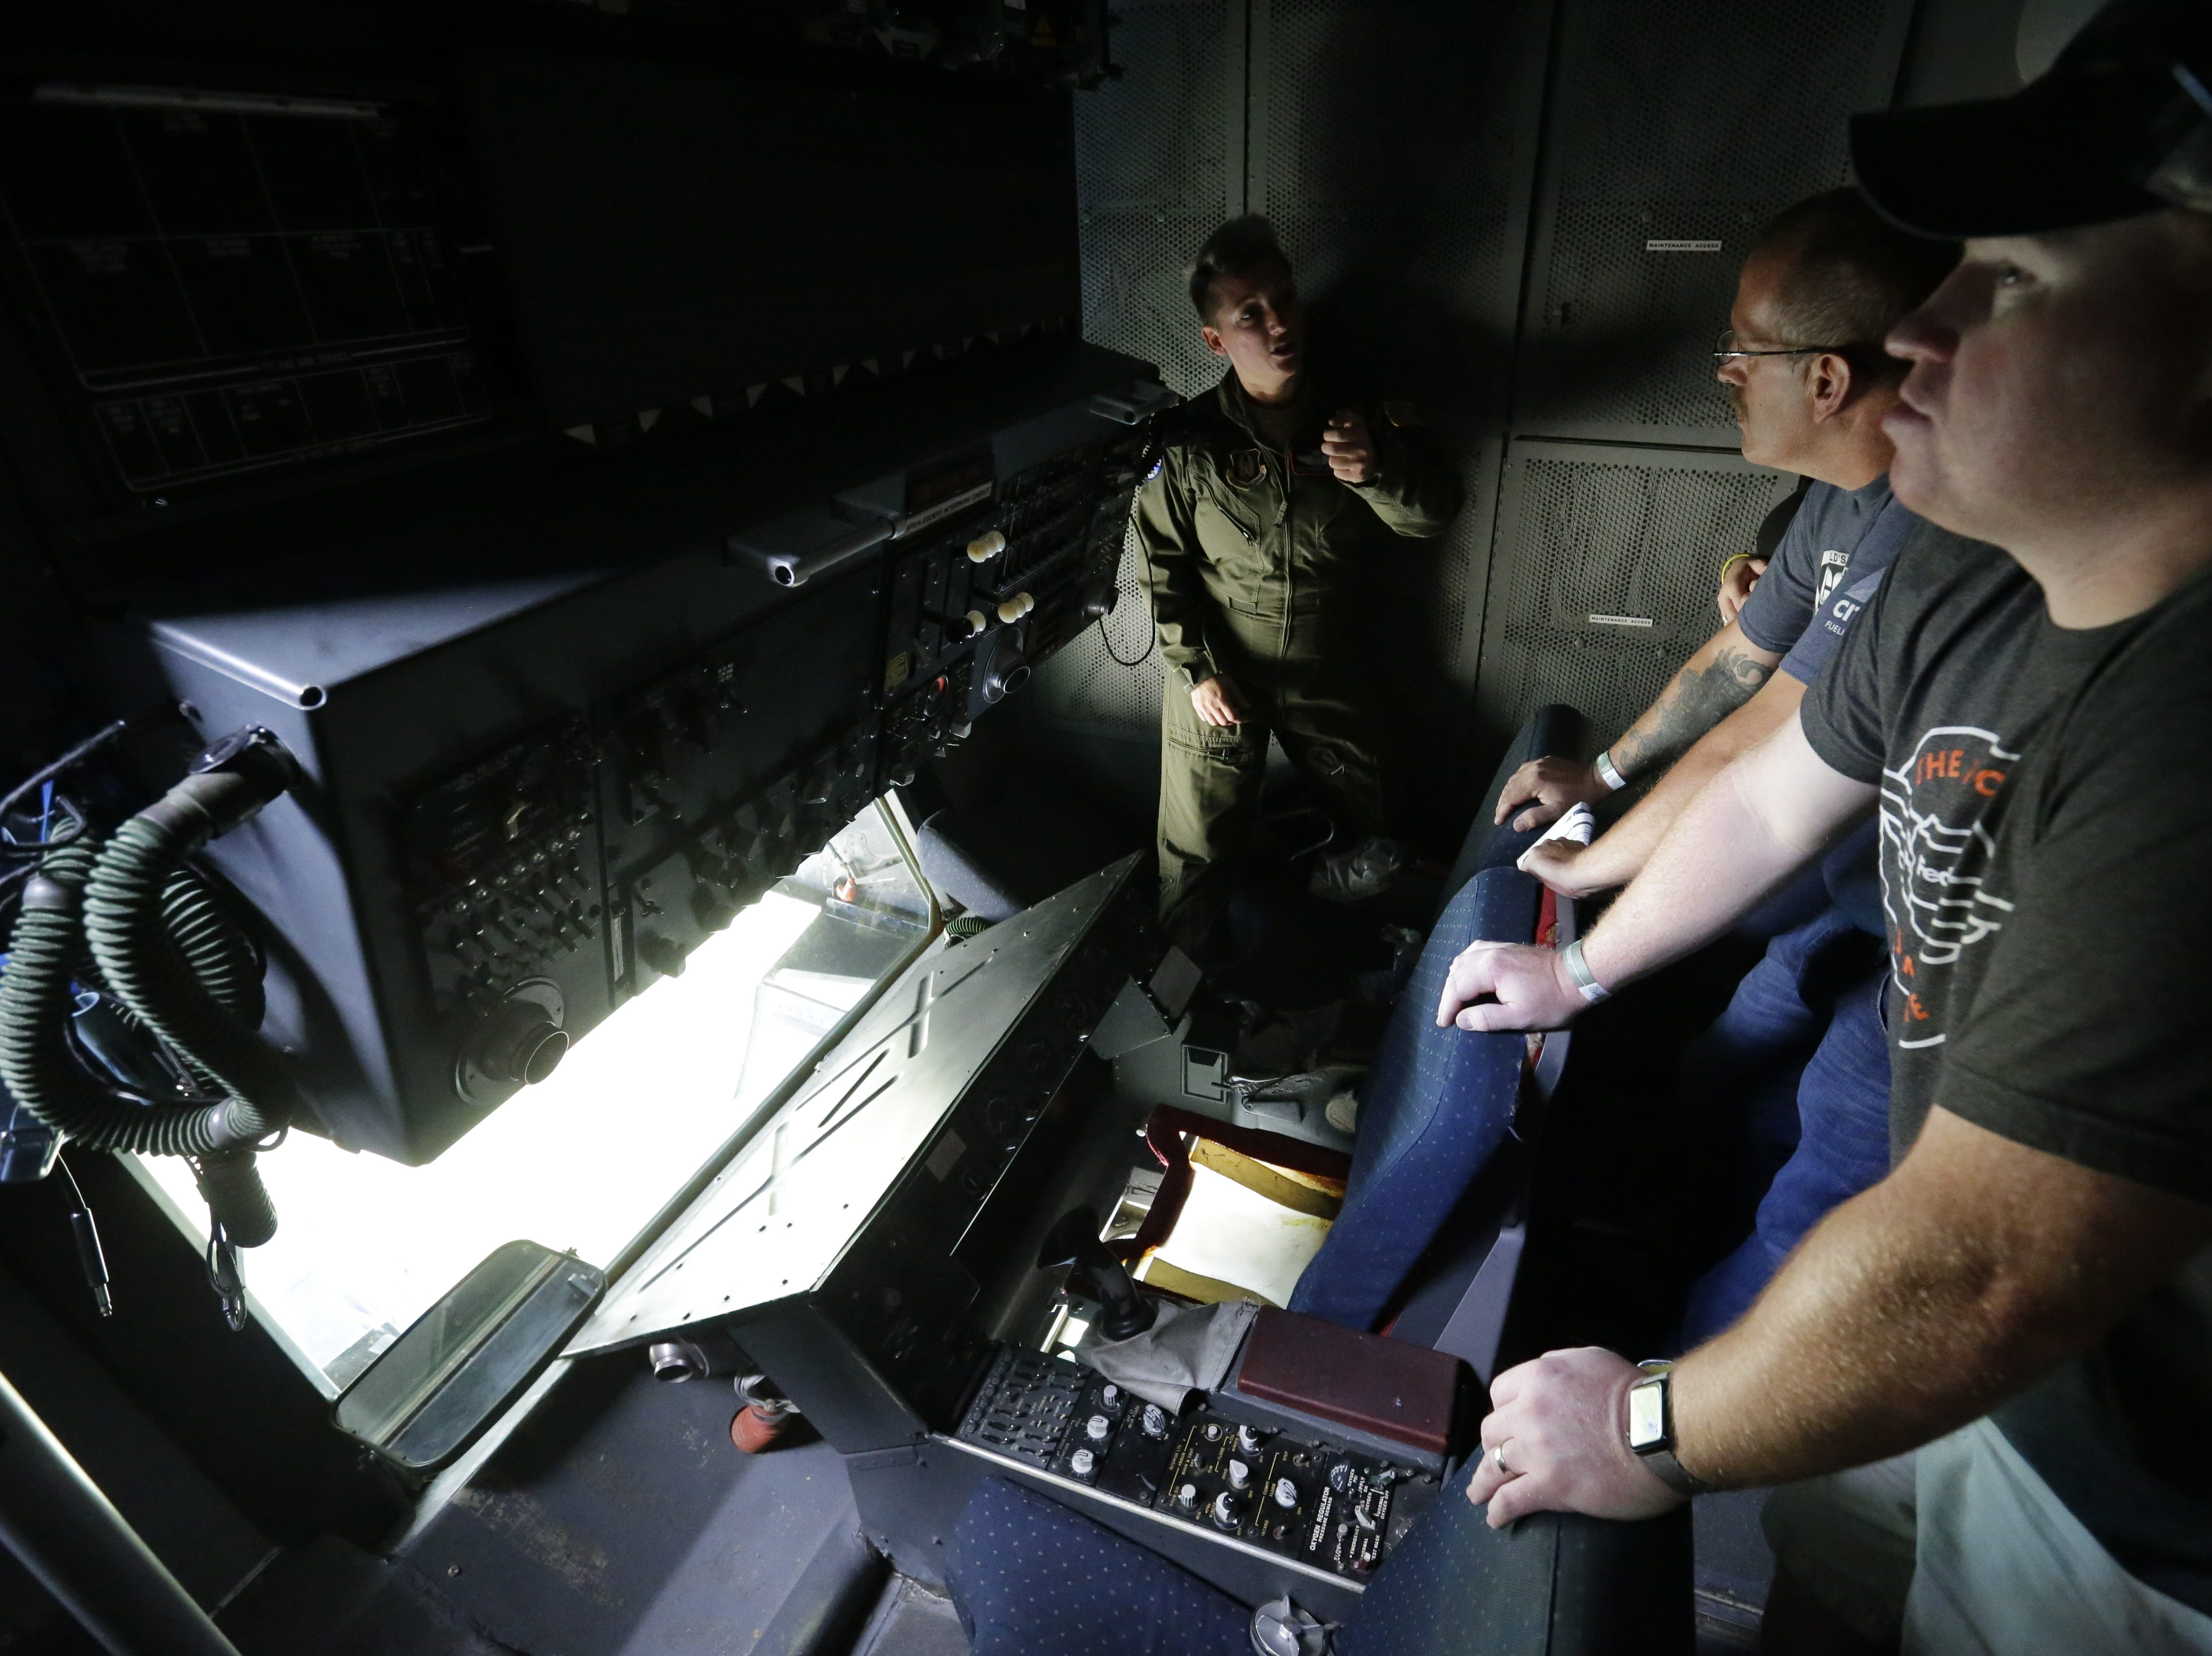 Inside the refueling area of the McDonnell Douglas KC-10 Extender, Friday, July 27, 2018, in Oshkosh, Wis.  The 66th annual Experimental Aircraft Association Fly-In Convention, AirVenture 2018 draws over 500,000 people and over 10,000 planes from more than 70 nations annually to the area.  The convention runs through July 29.Joe Sienkiewicz/USA Today NETWORK-Wisconsin